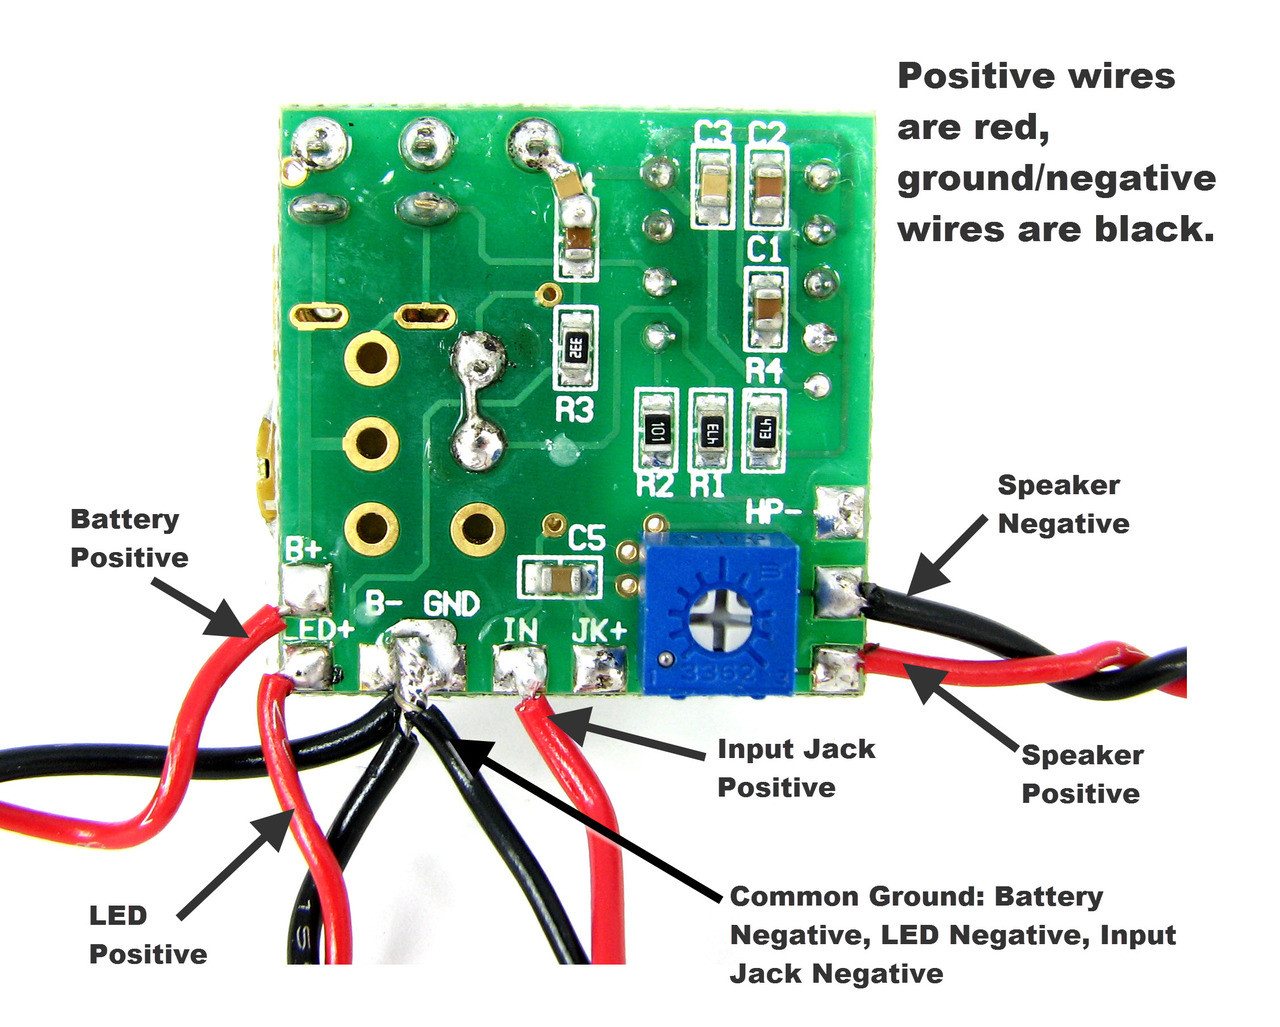 hight resolution of 1 4 jack wiring to circuit board wiring diagrams wd 1 4 plug wiring 1 4 inch audio jack wiring